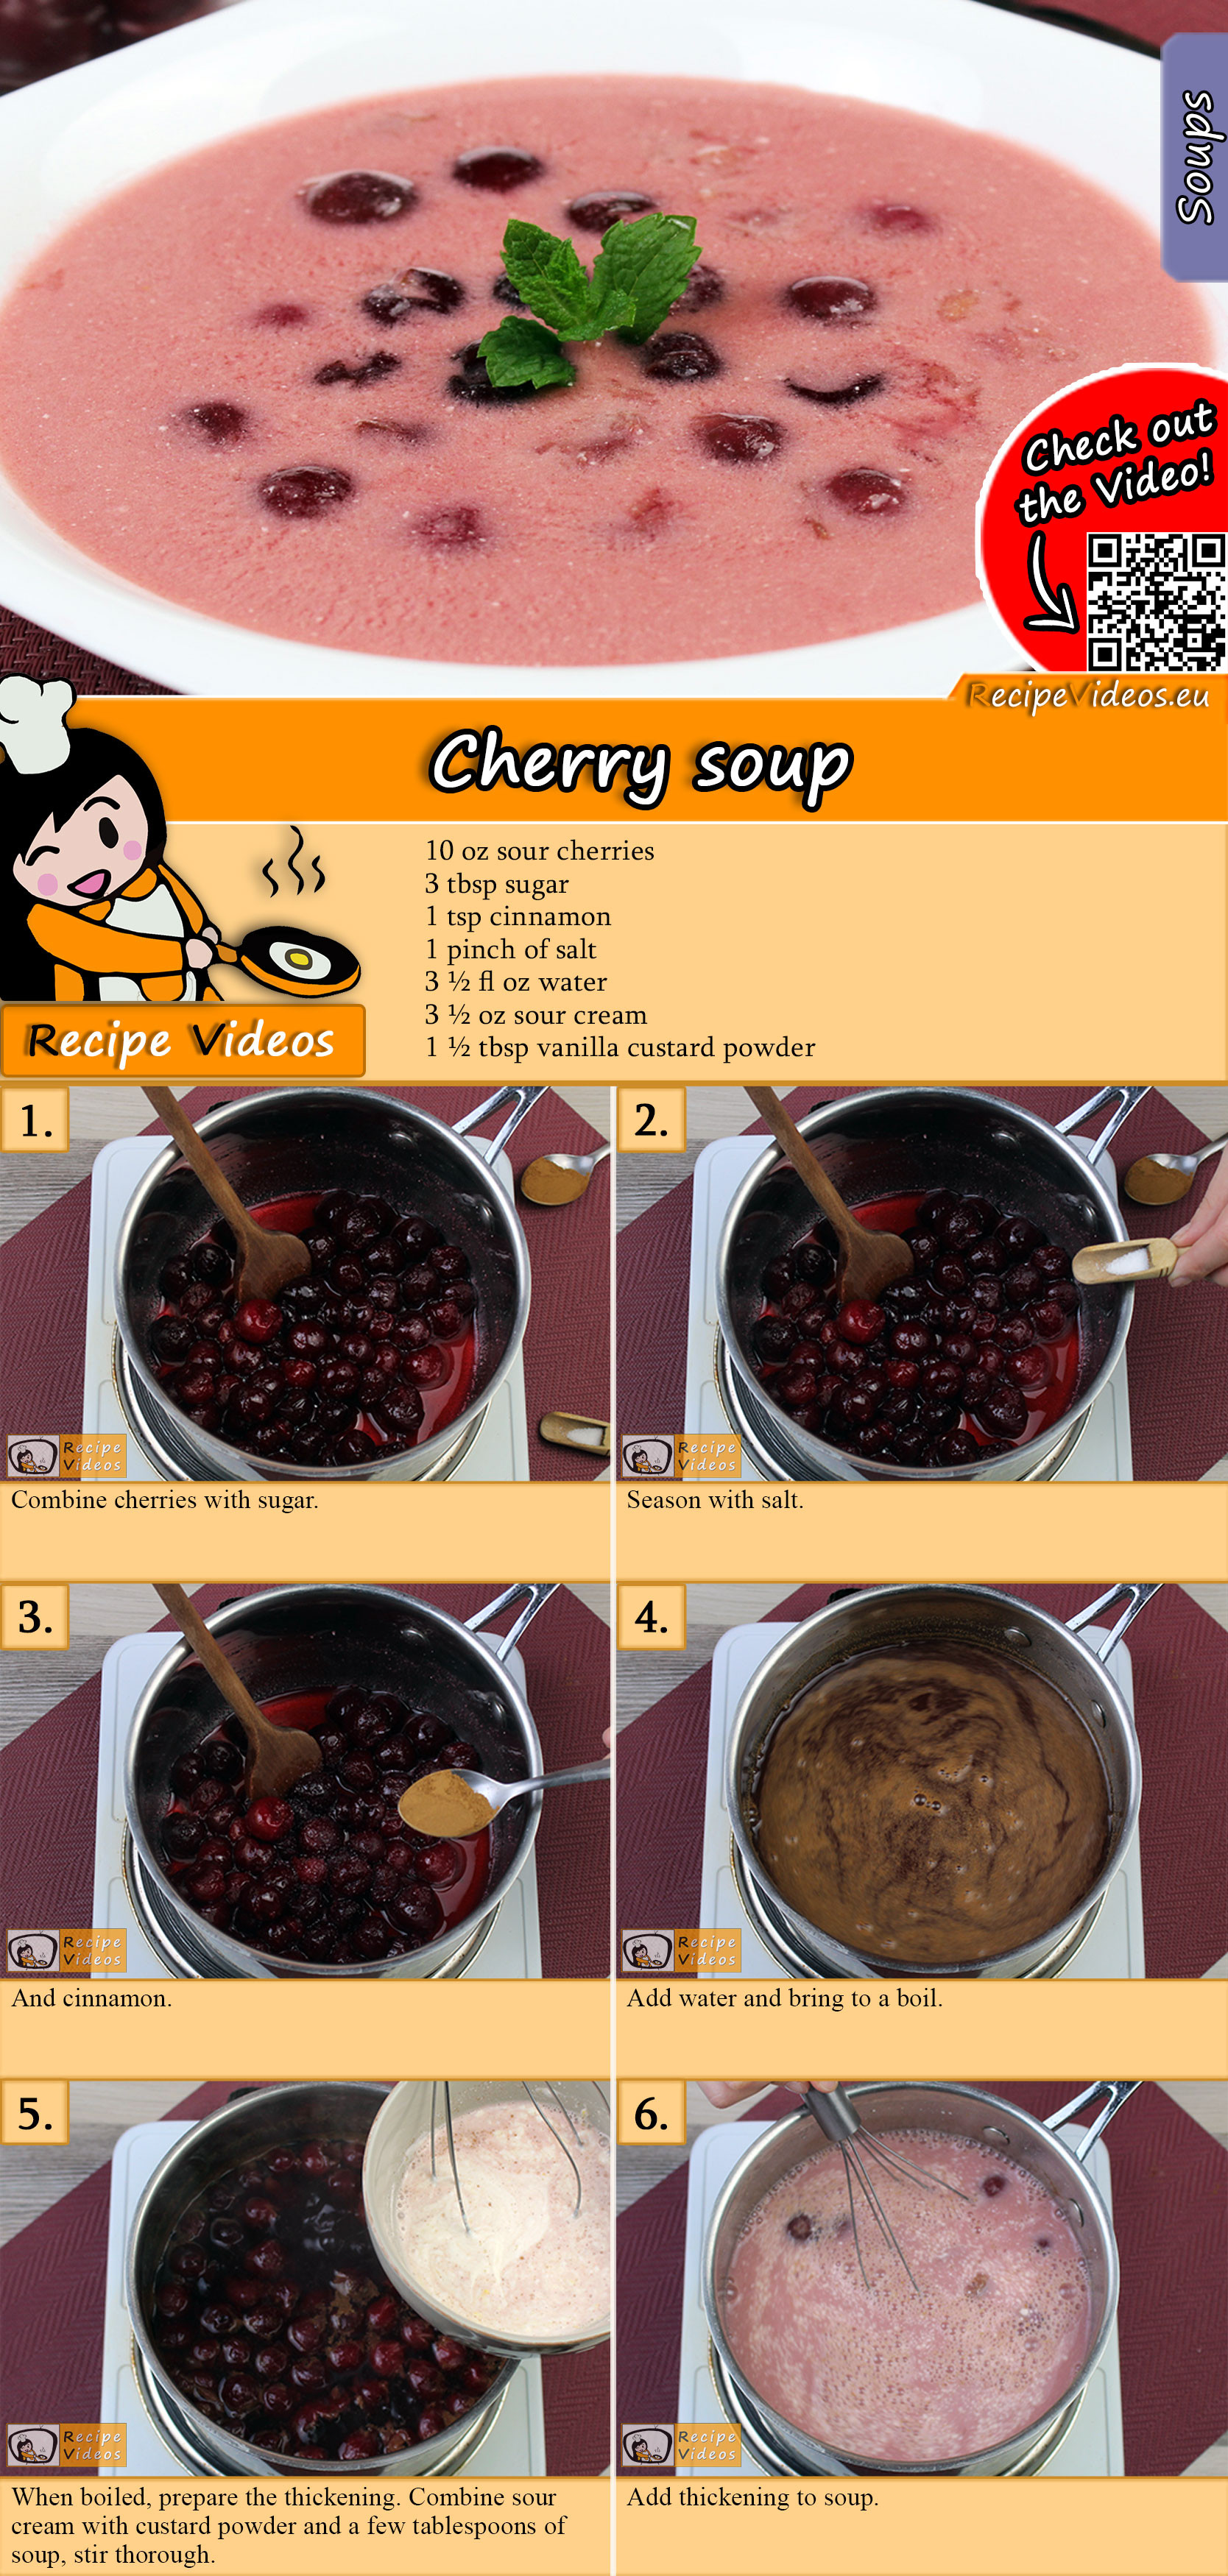 Cherry soup recipe with video